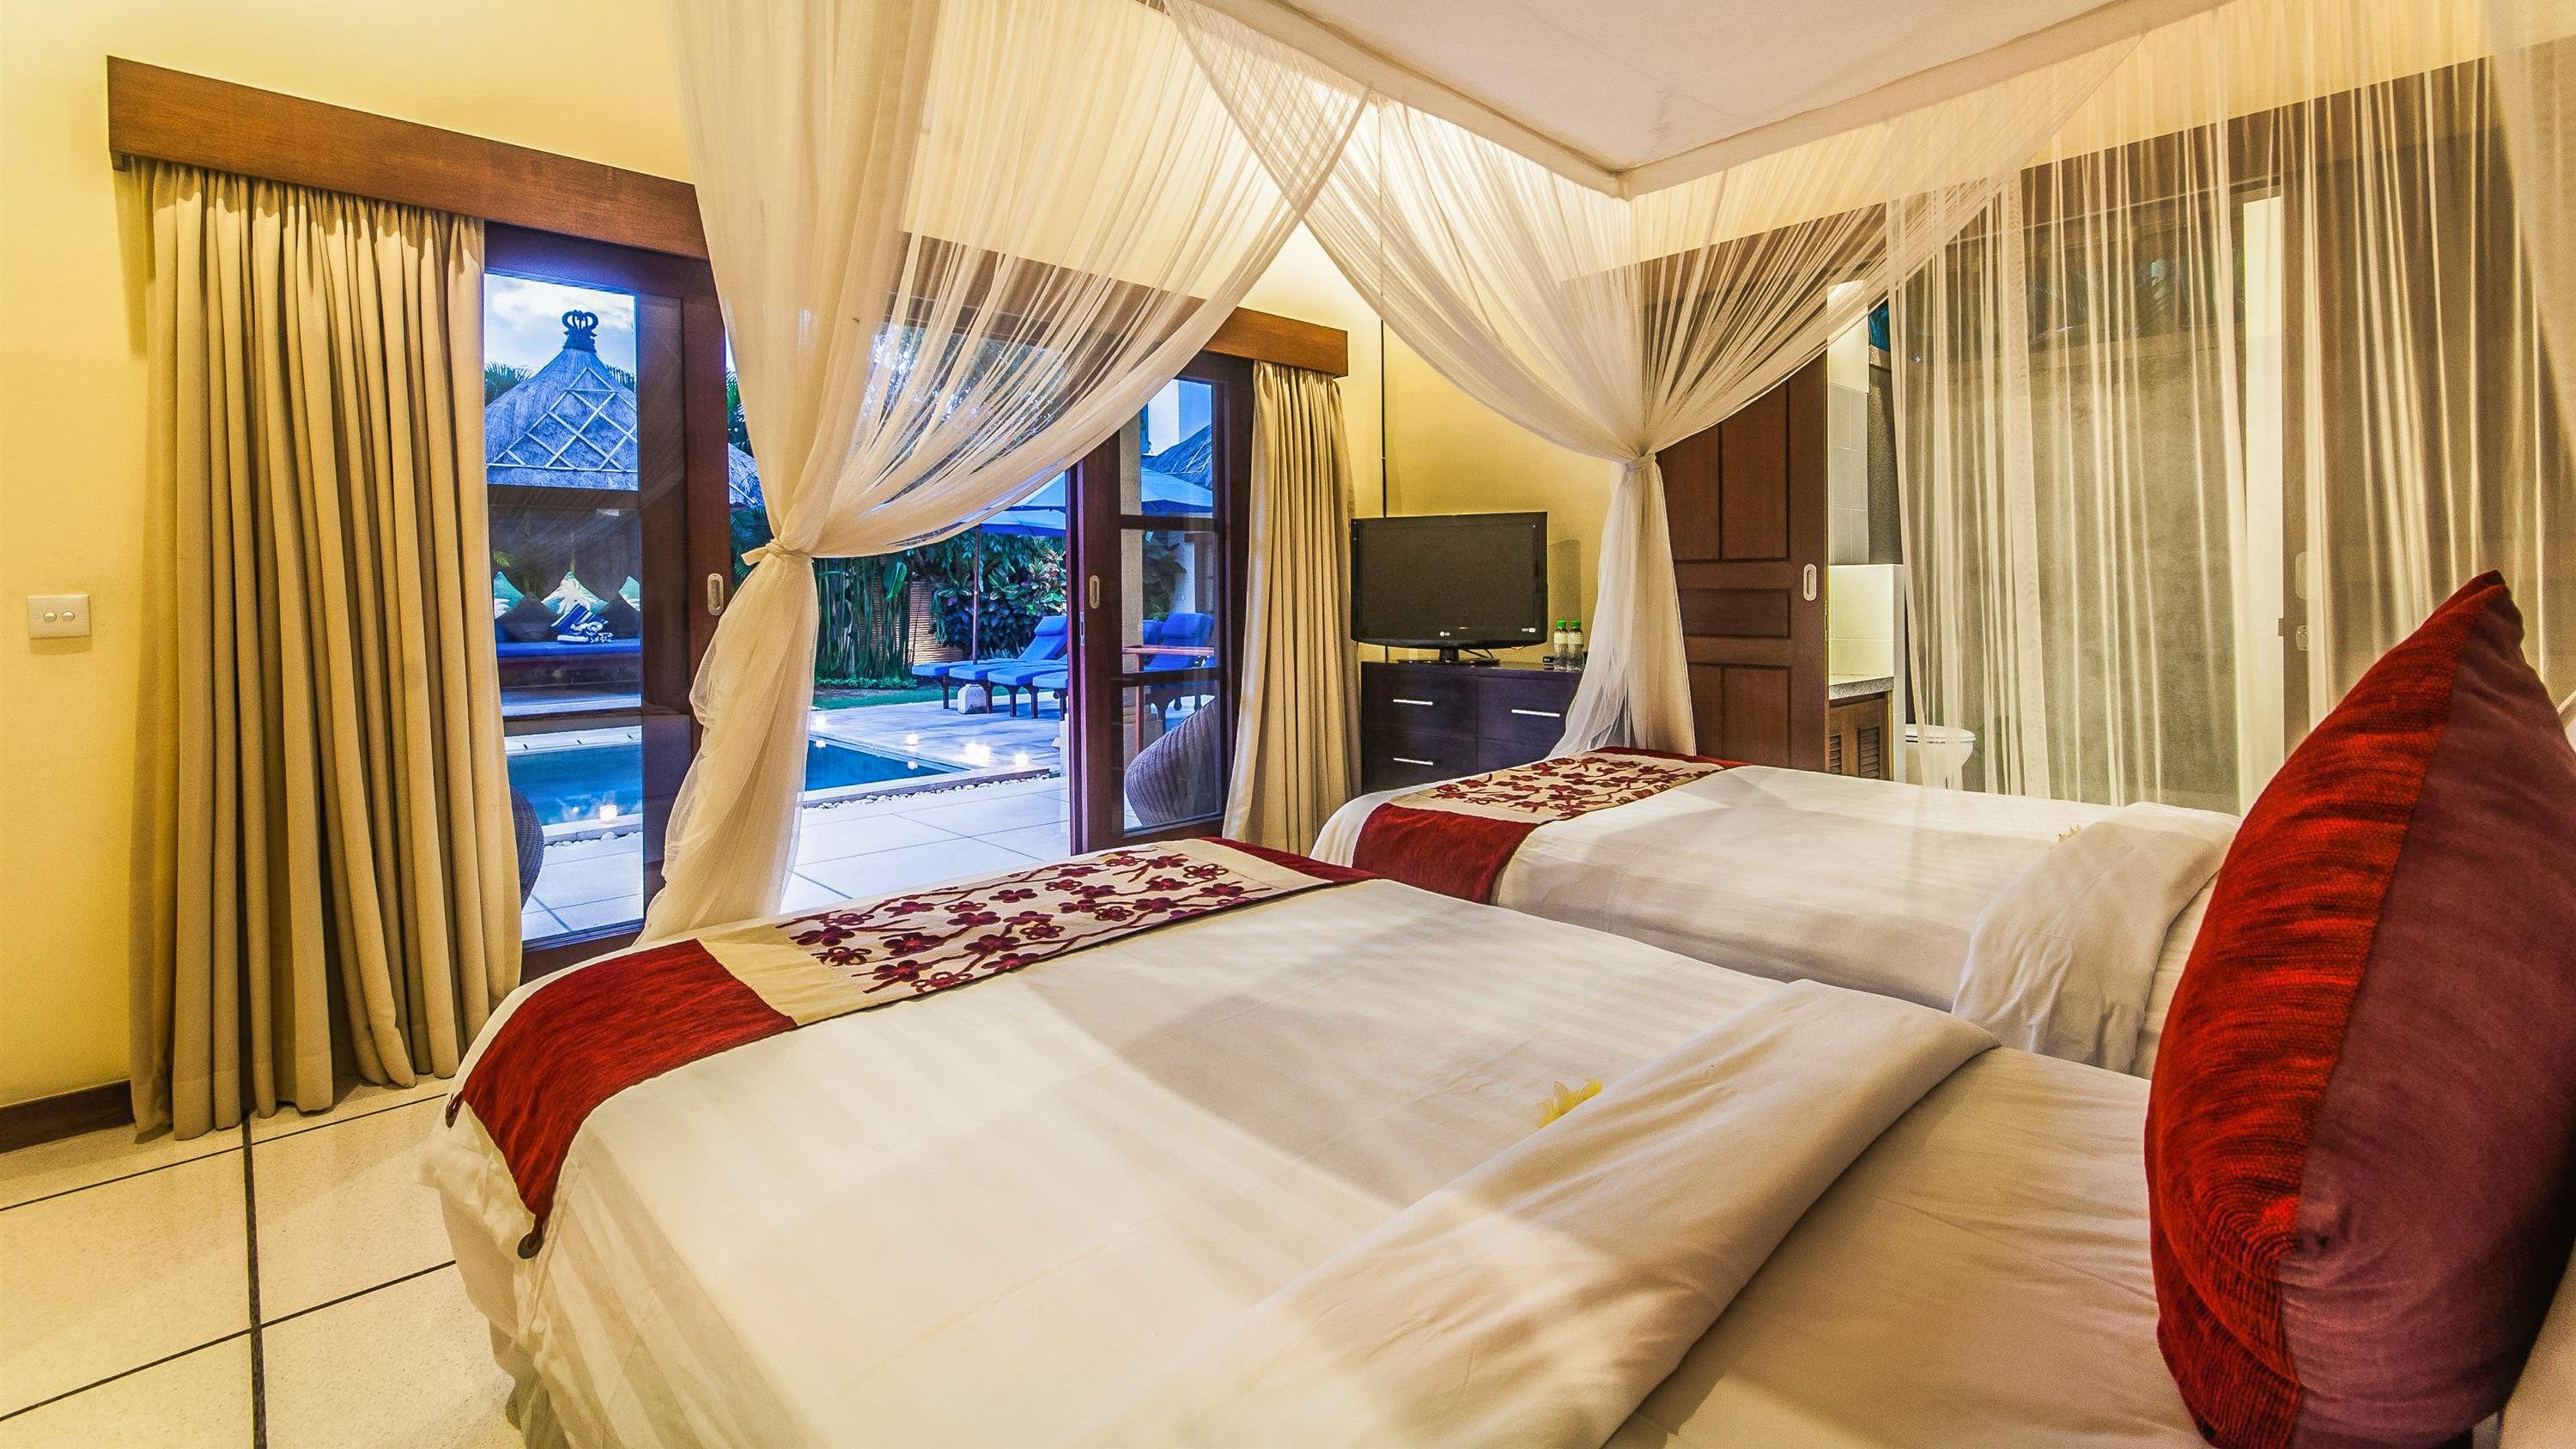 Twin Bedroom with Pool View - Villa Saphir - Seminyak, Bali